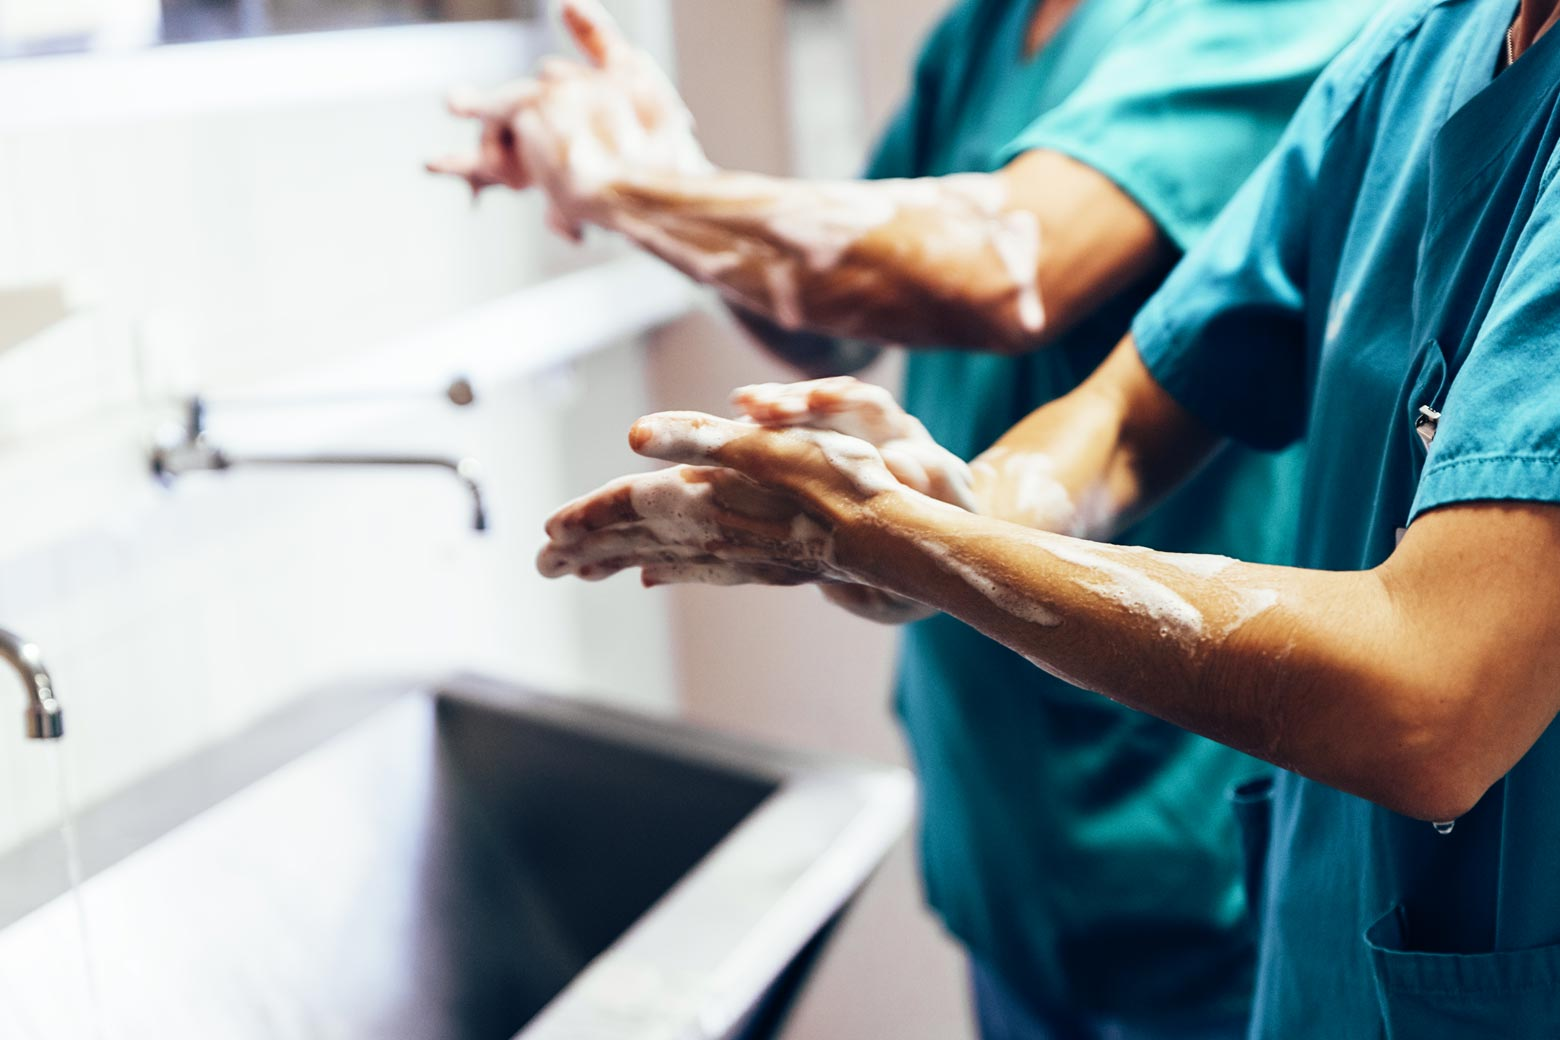 Medical professionals wash their hands.